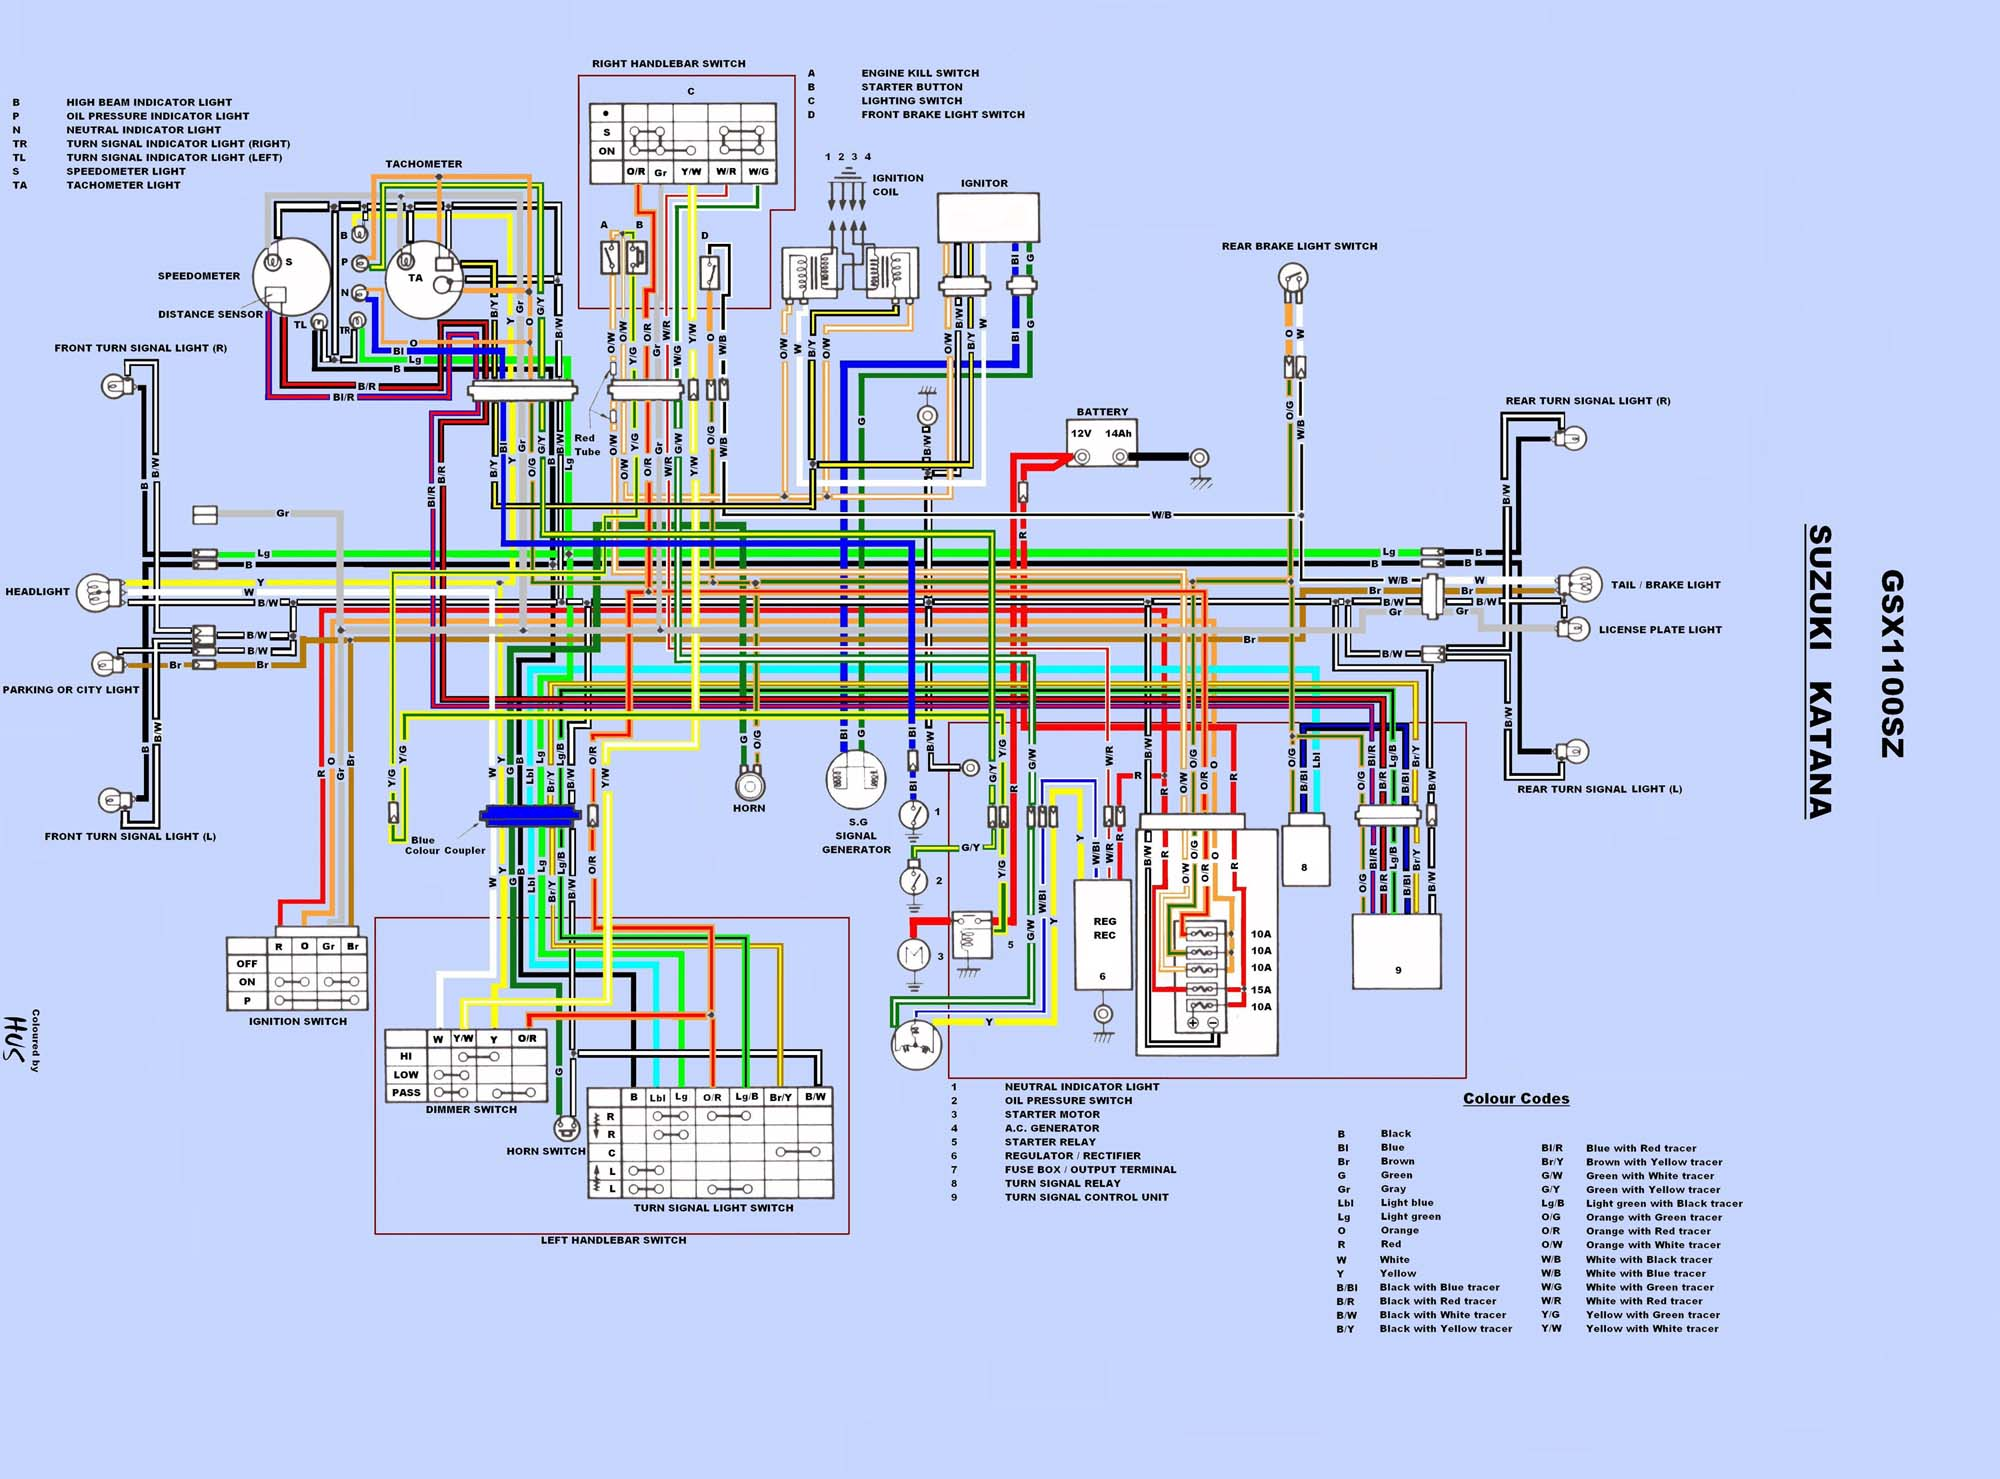 Fantastic Suzuki Gsf 600 Wiring Diagram Basic Electronics Wiring Diagram Wiring Cloud Oideiuggs Outletorg